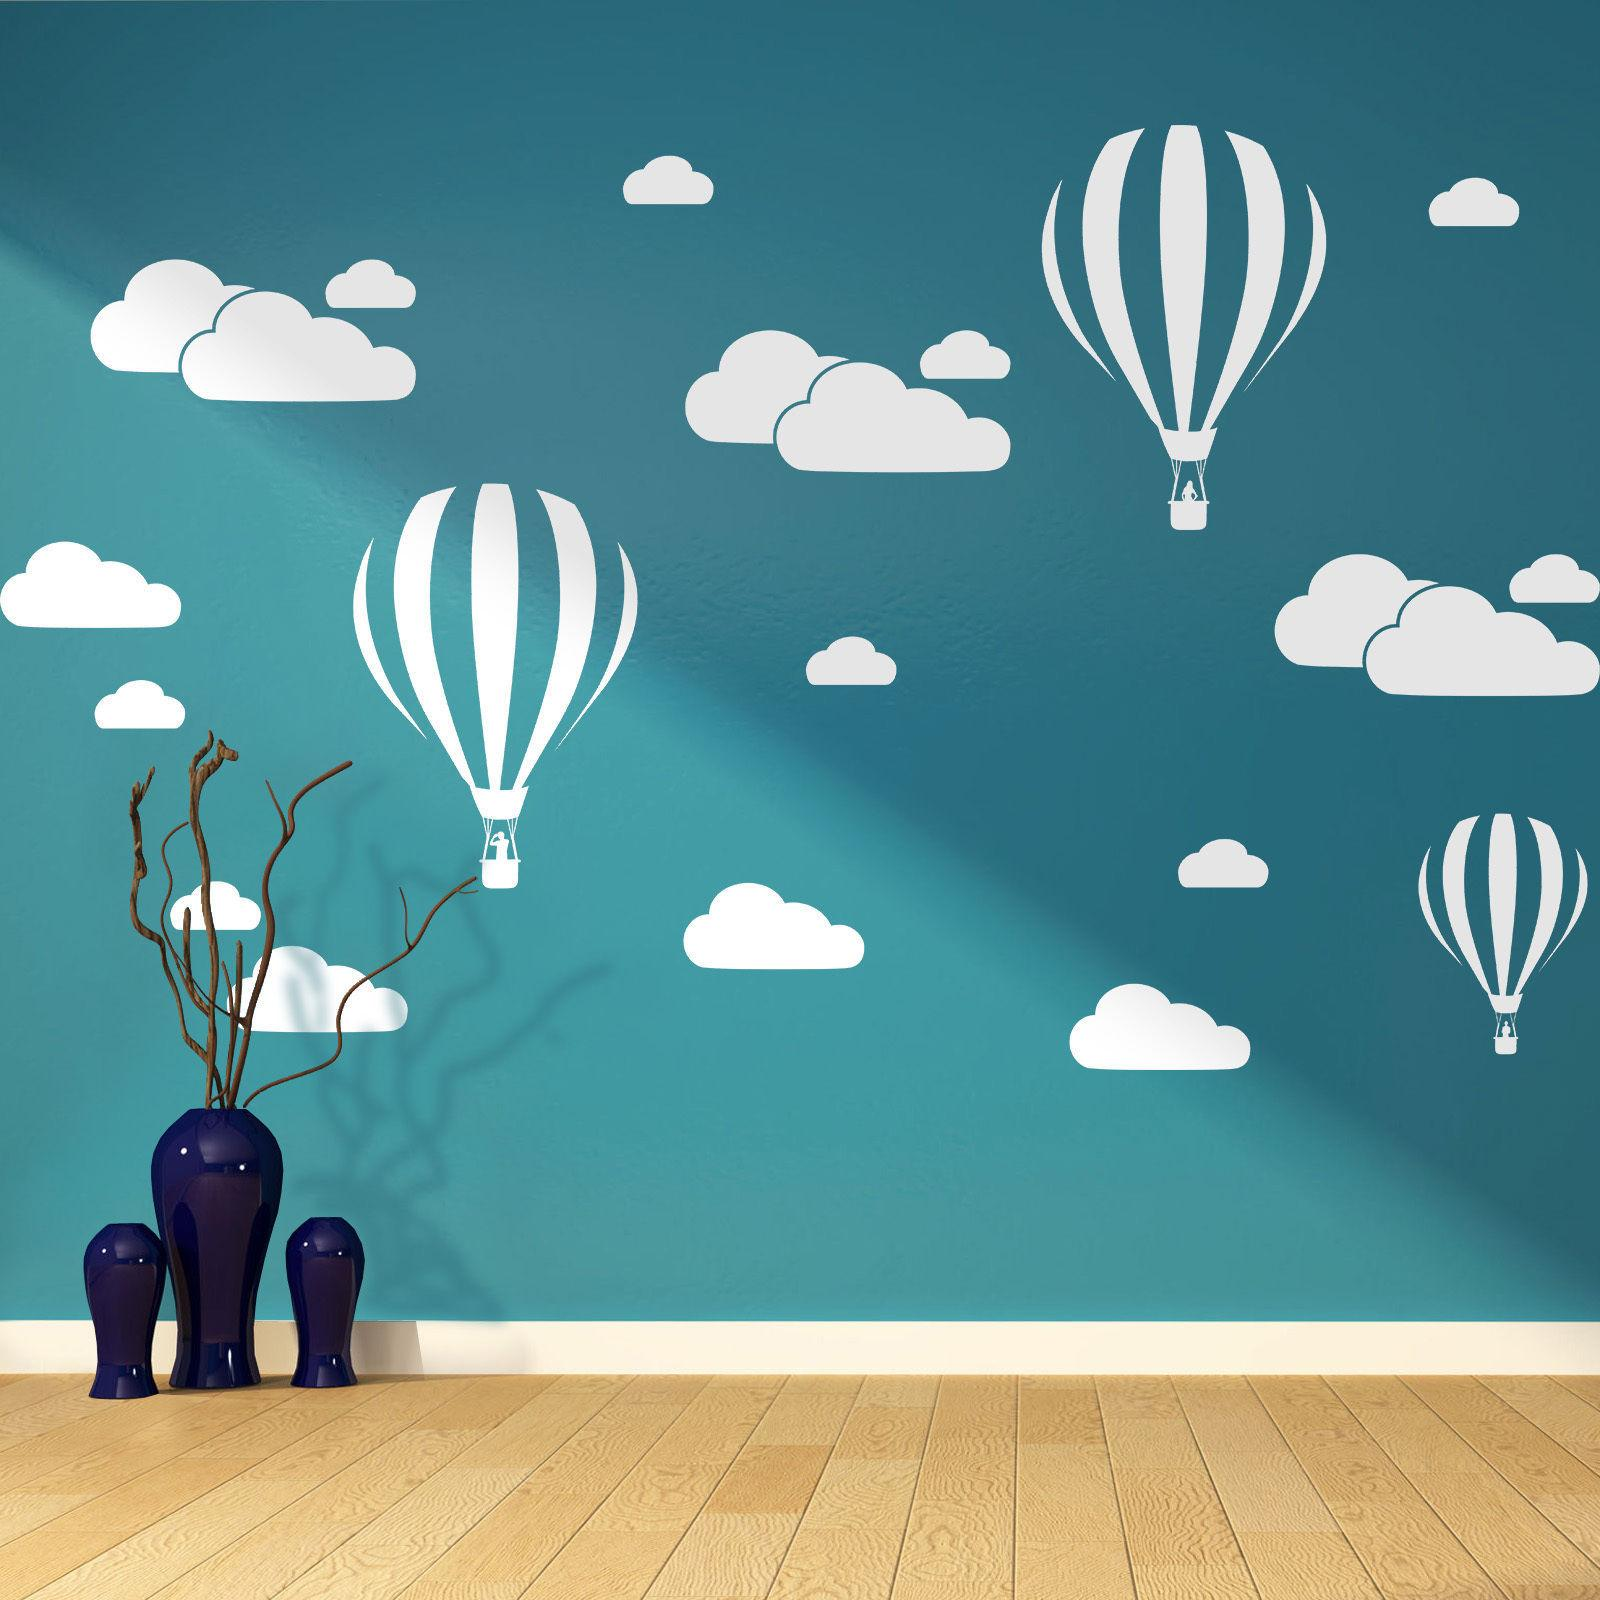 Cartoon Hot Air Balloon Wall Decals Vinyl Kids Room Wall Decorative